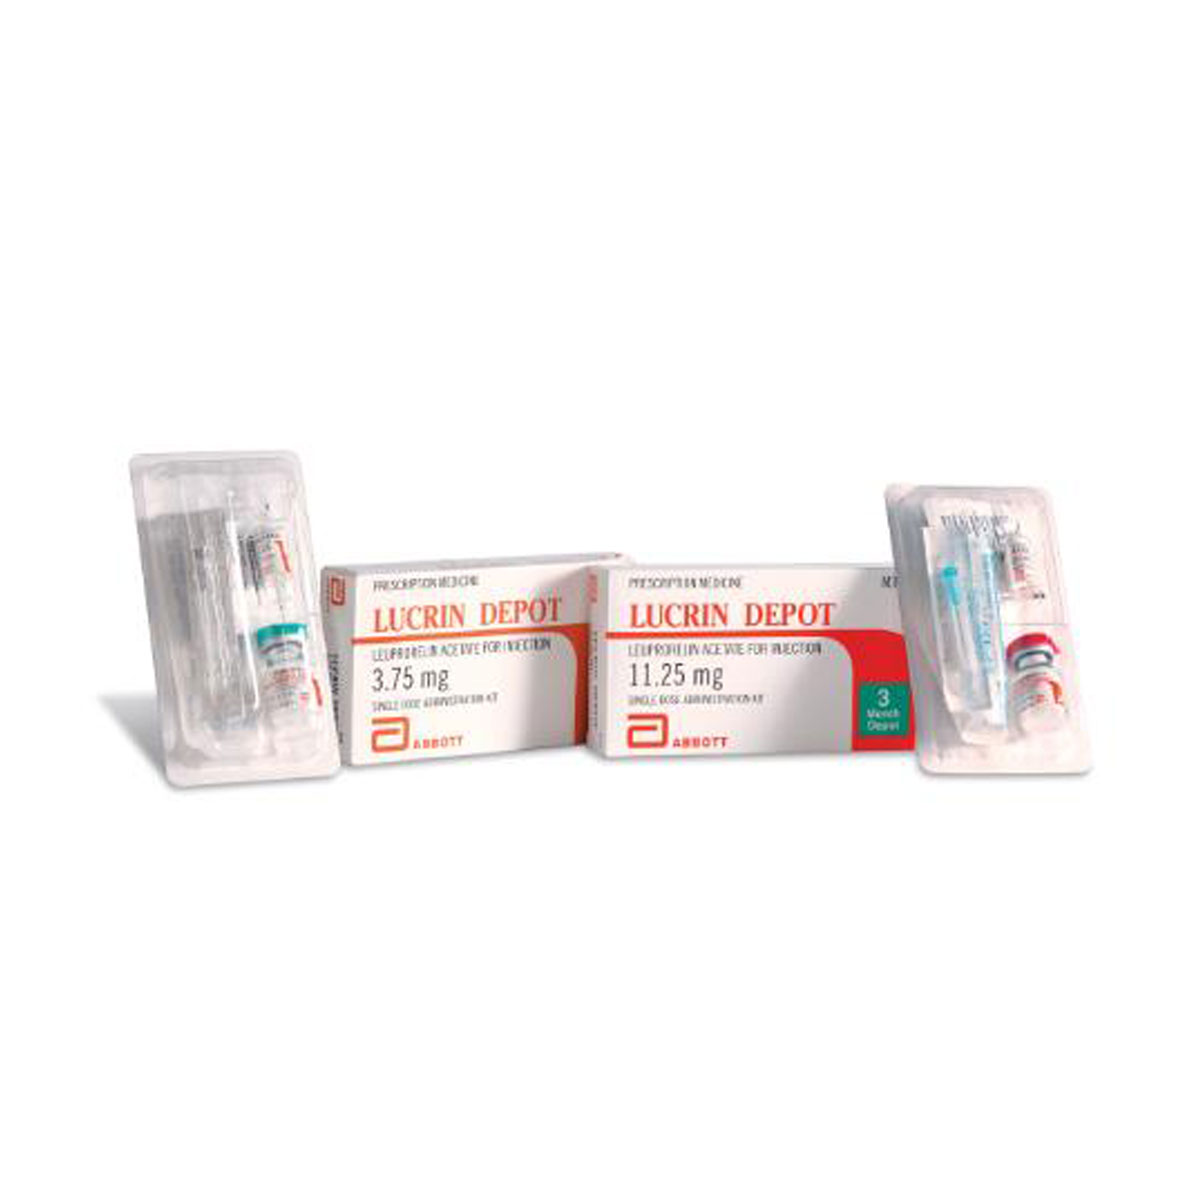 LUCRIN DEPOT (imported)